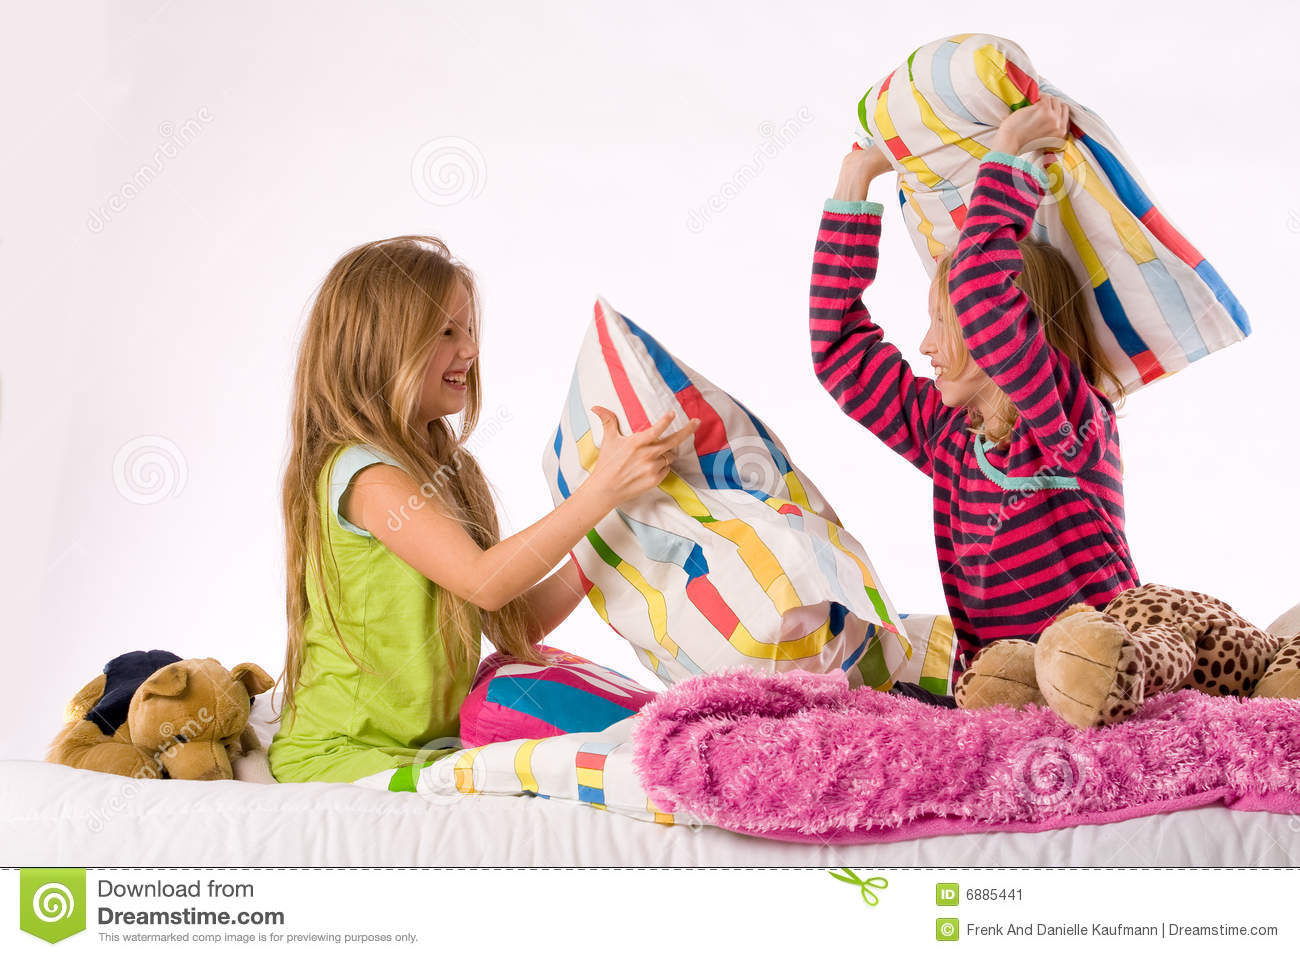 The Girls Pillow Fight Stock Image - Image: 6885441